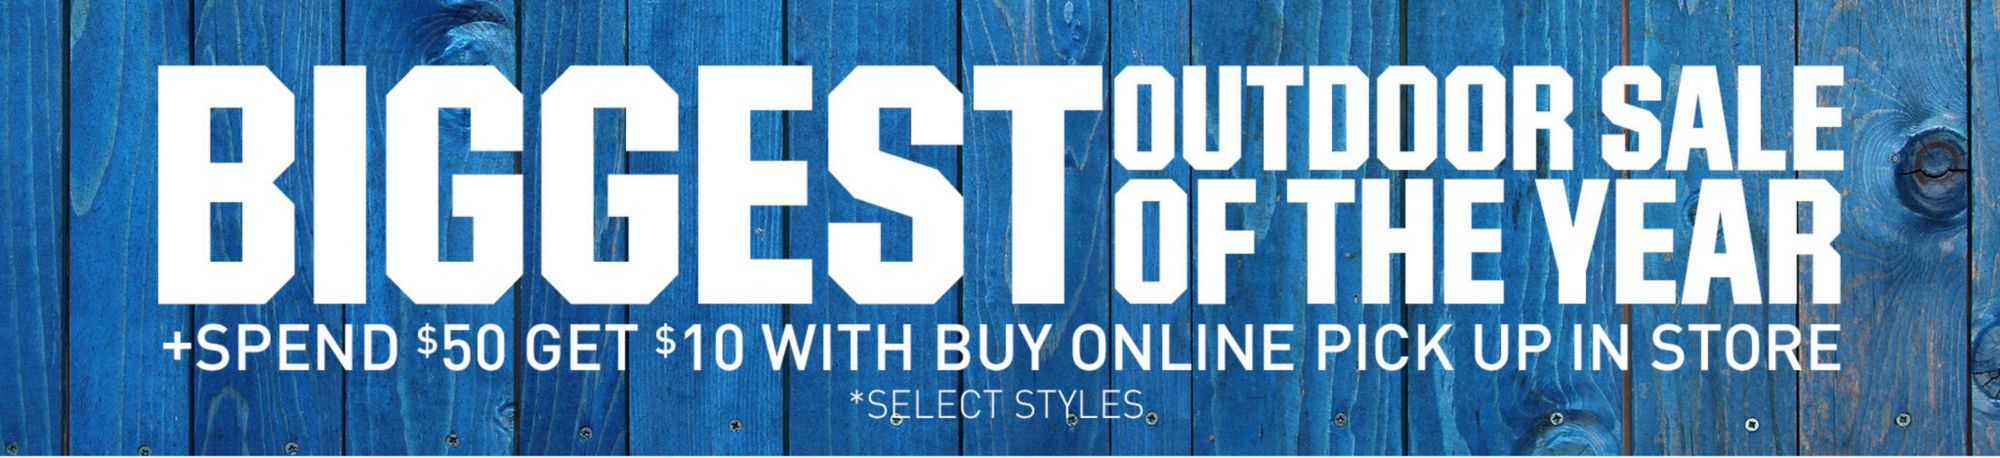 Biggest Outdoor Sale of the Year